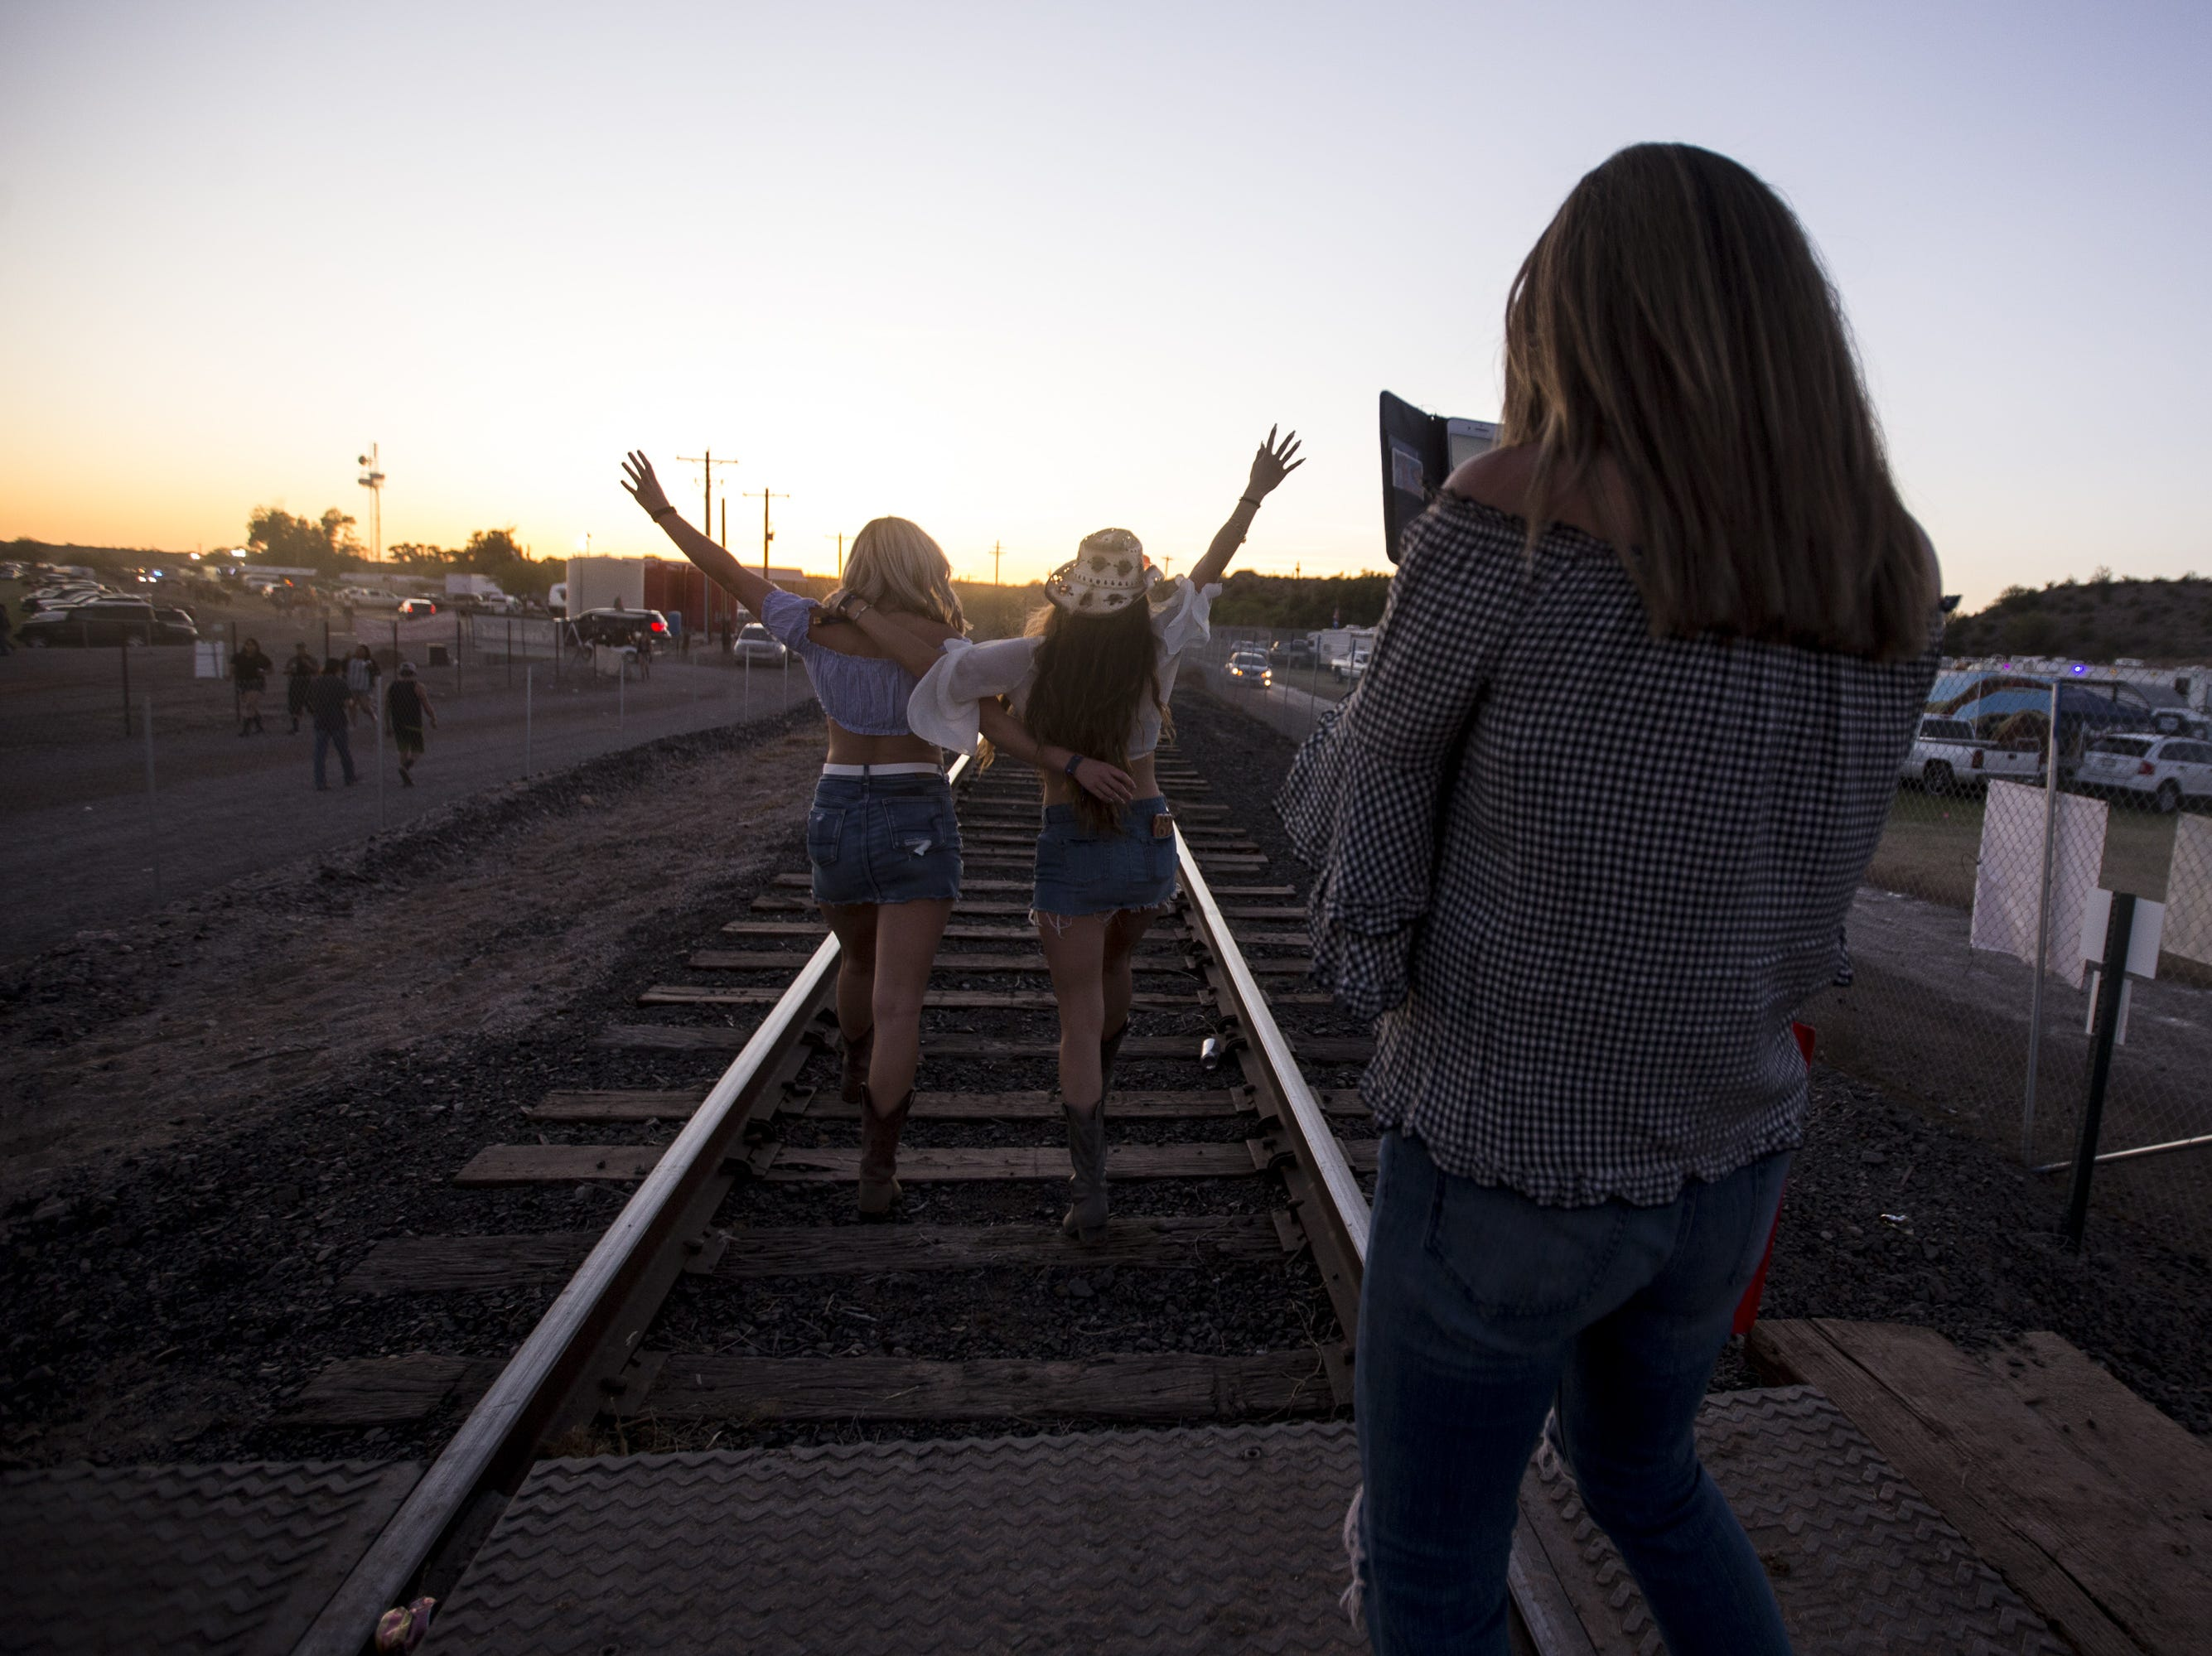 Hortencia Reyes takes a photo of Ashley Holland (left) and JonElle Reyes on April 13, 2019, during Day 3 of Country Thunder Arizona in Florence, Arizona.